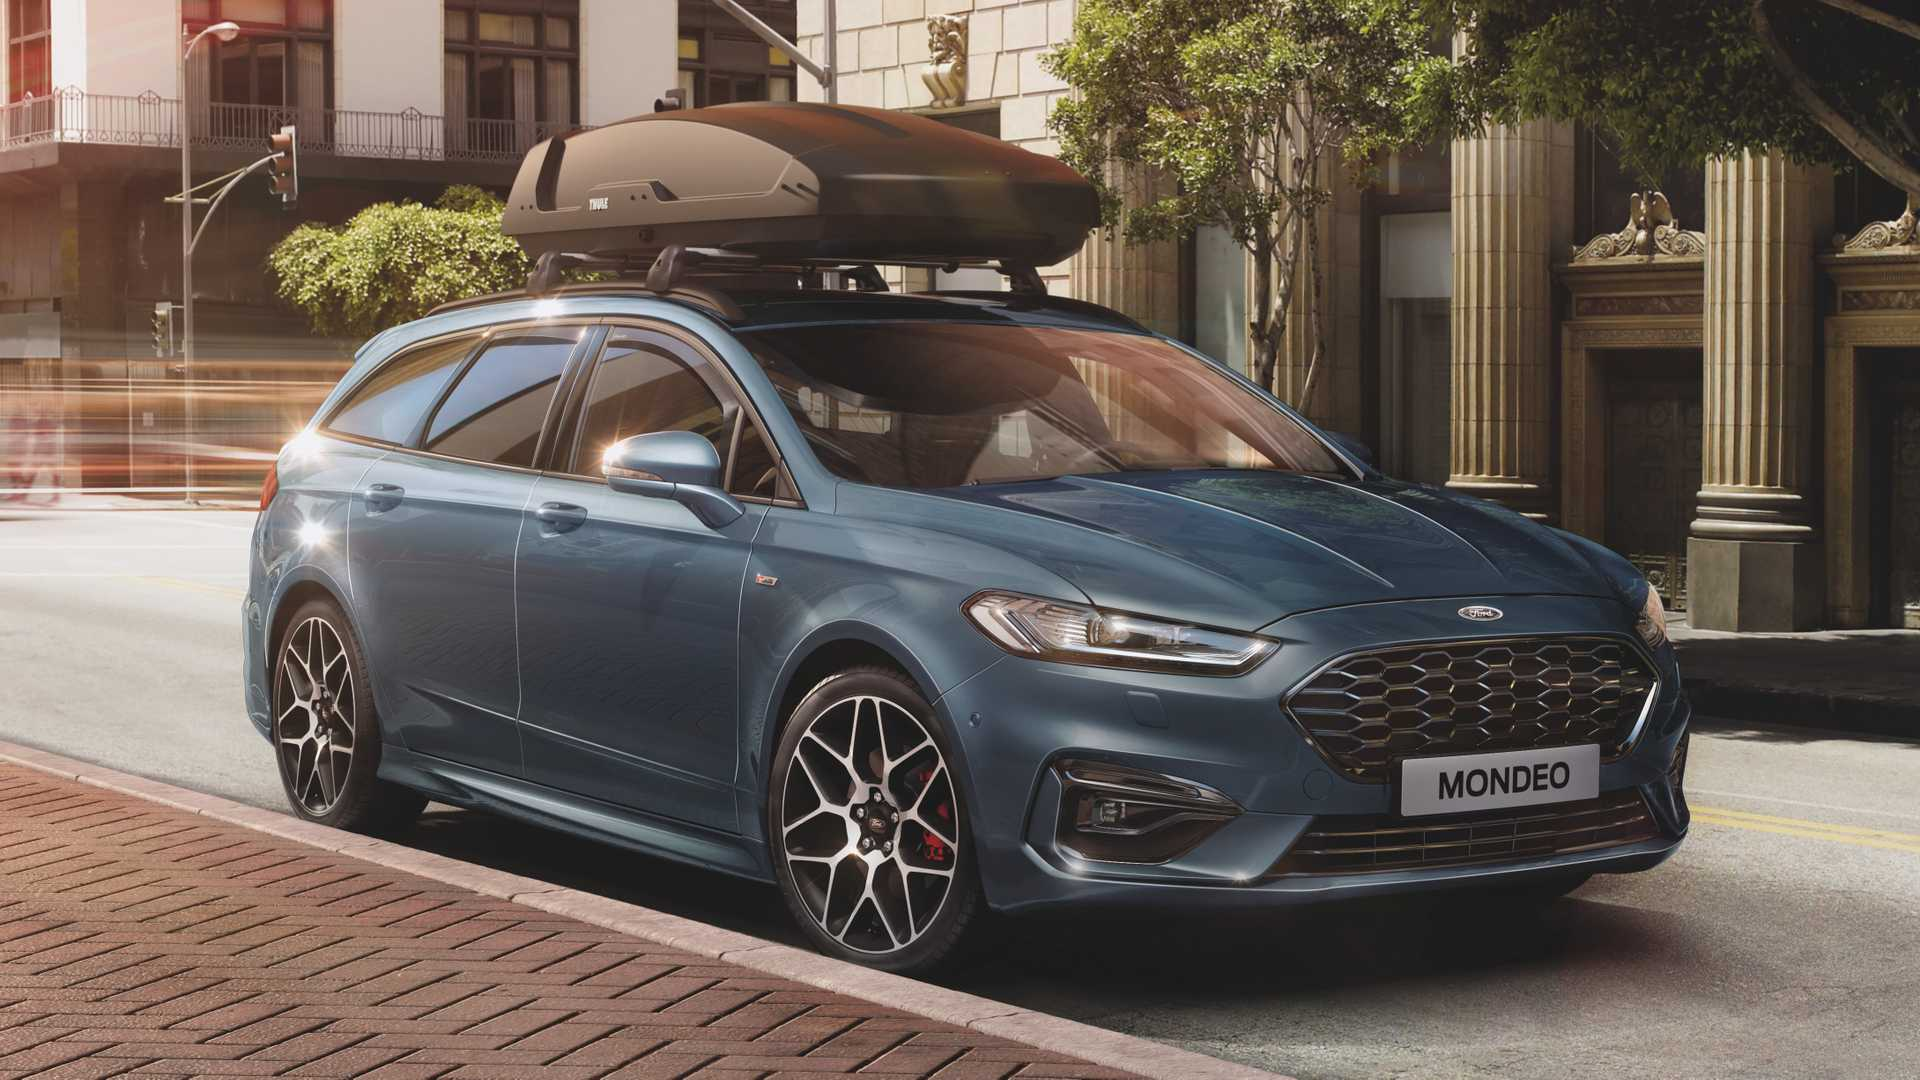 Ford Mondeo Lives On In Europe Where Gas Models Are All Hybrid Now